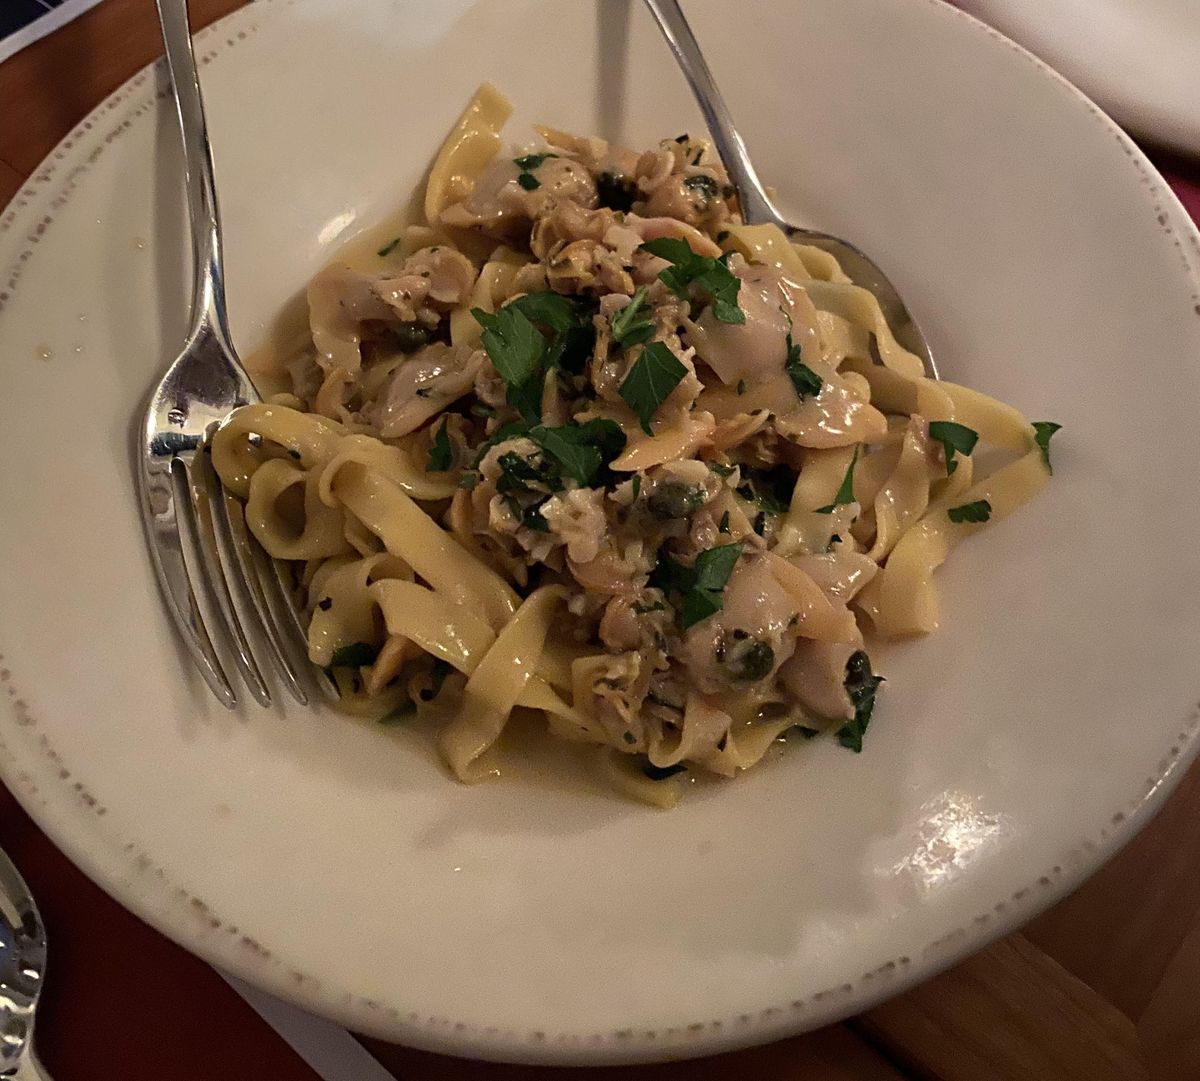 Tagliatelle pasta sits in a bowl with clams, bright green parsley, and butter